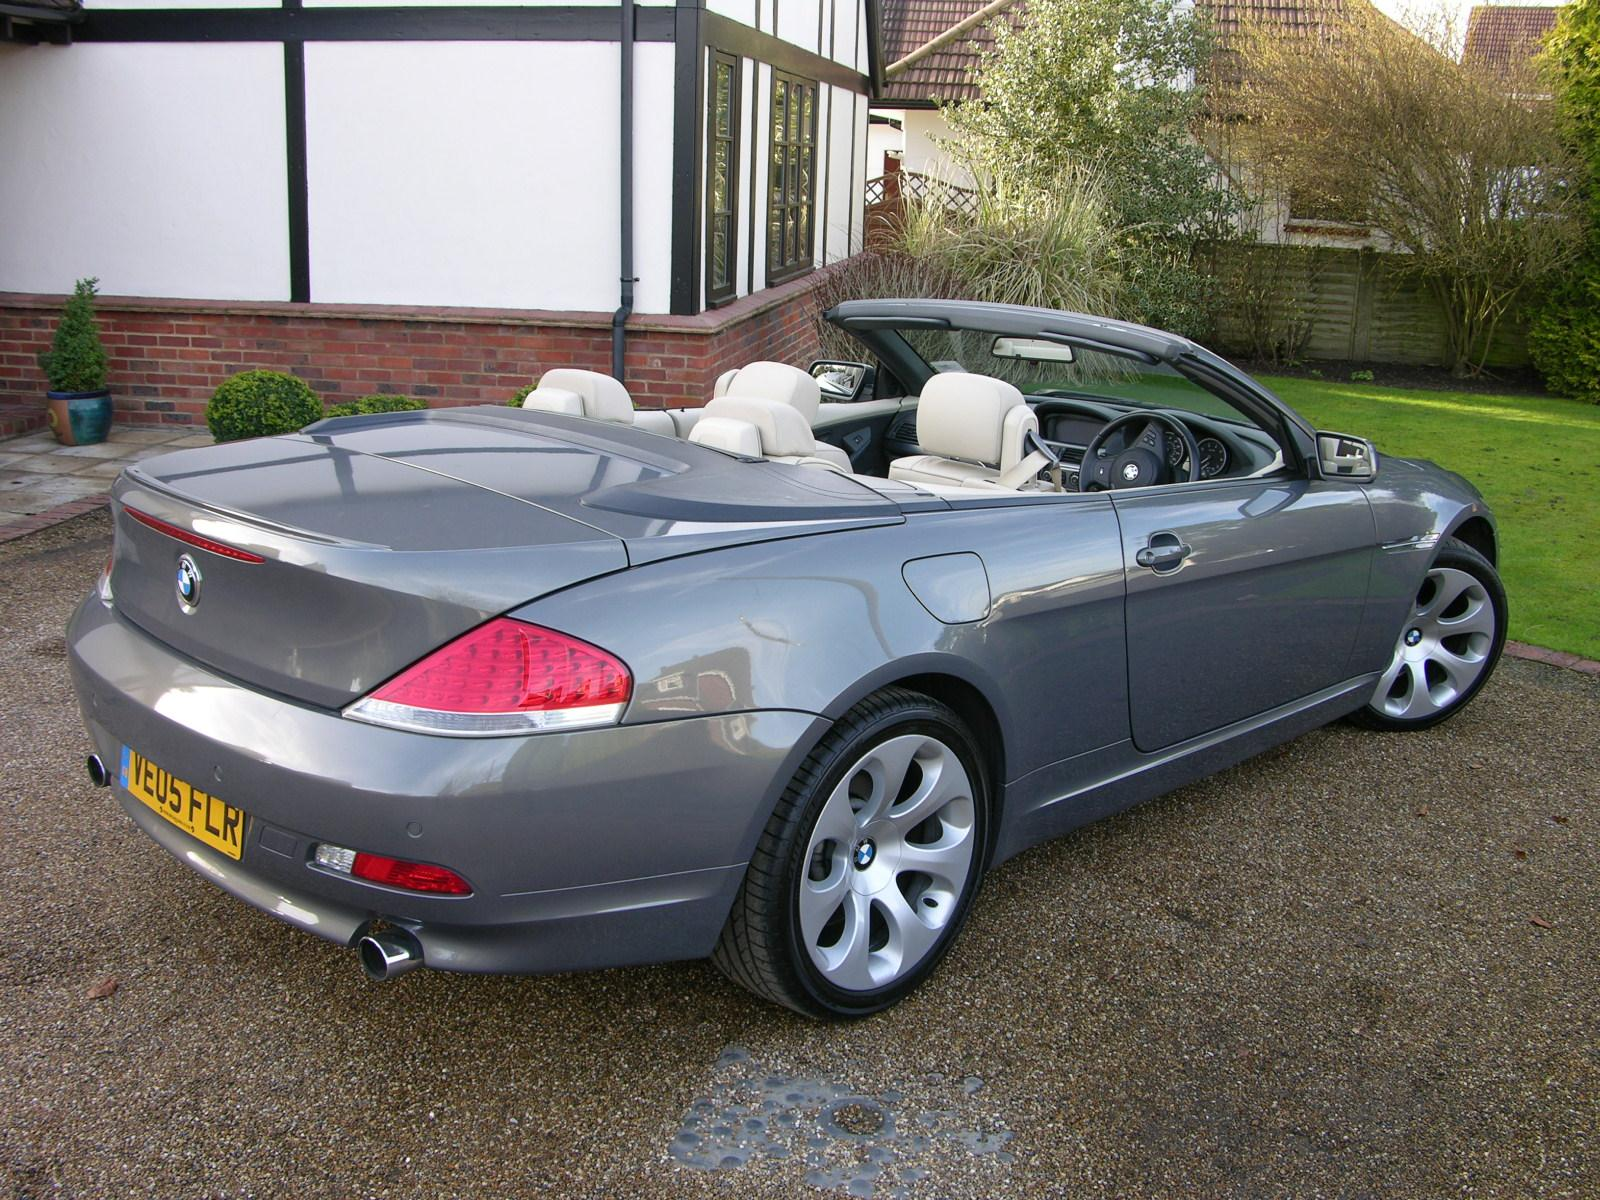 file 2005 bmw 645ci cabriolet flickr the car spy 18 jpg wikimedia commons